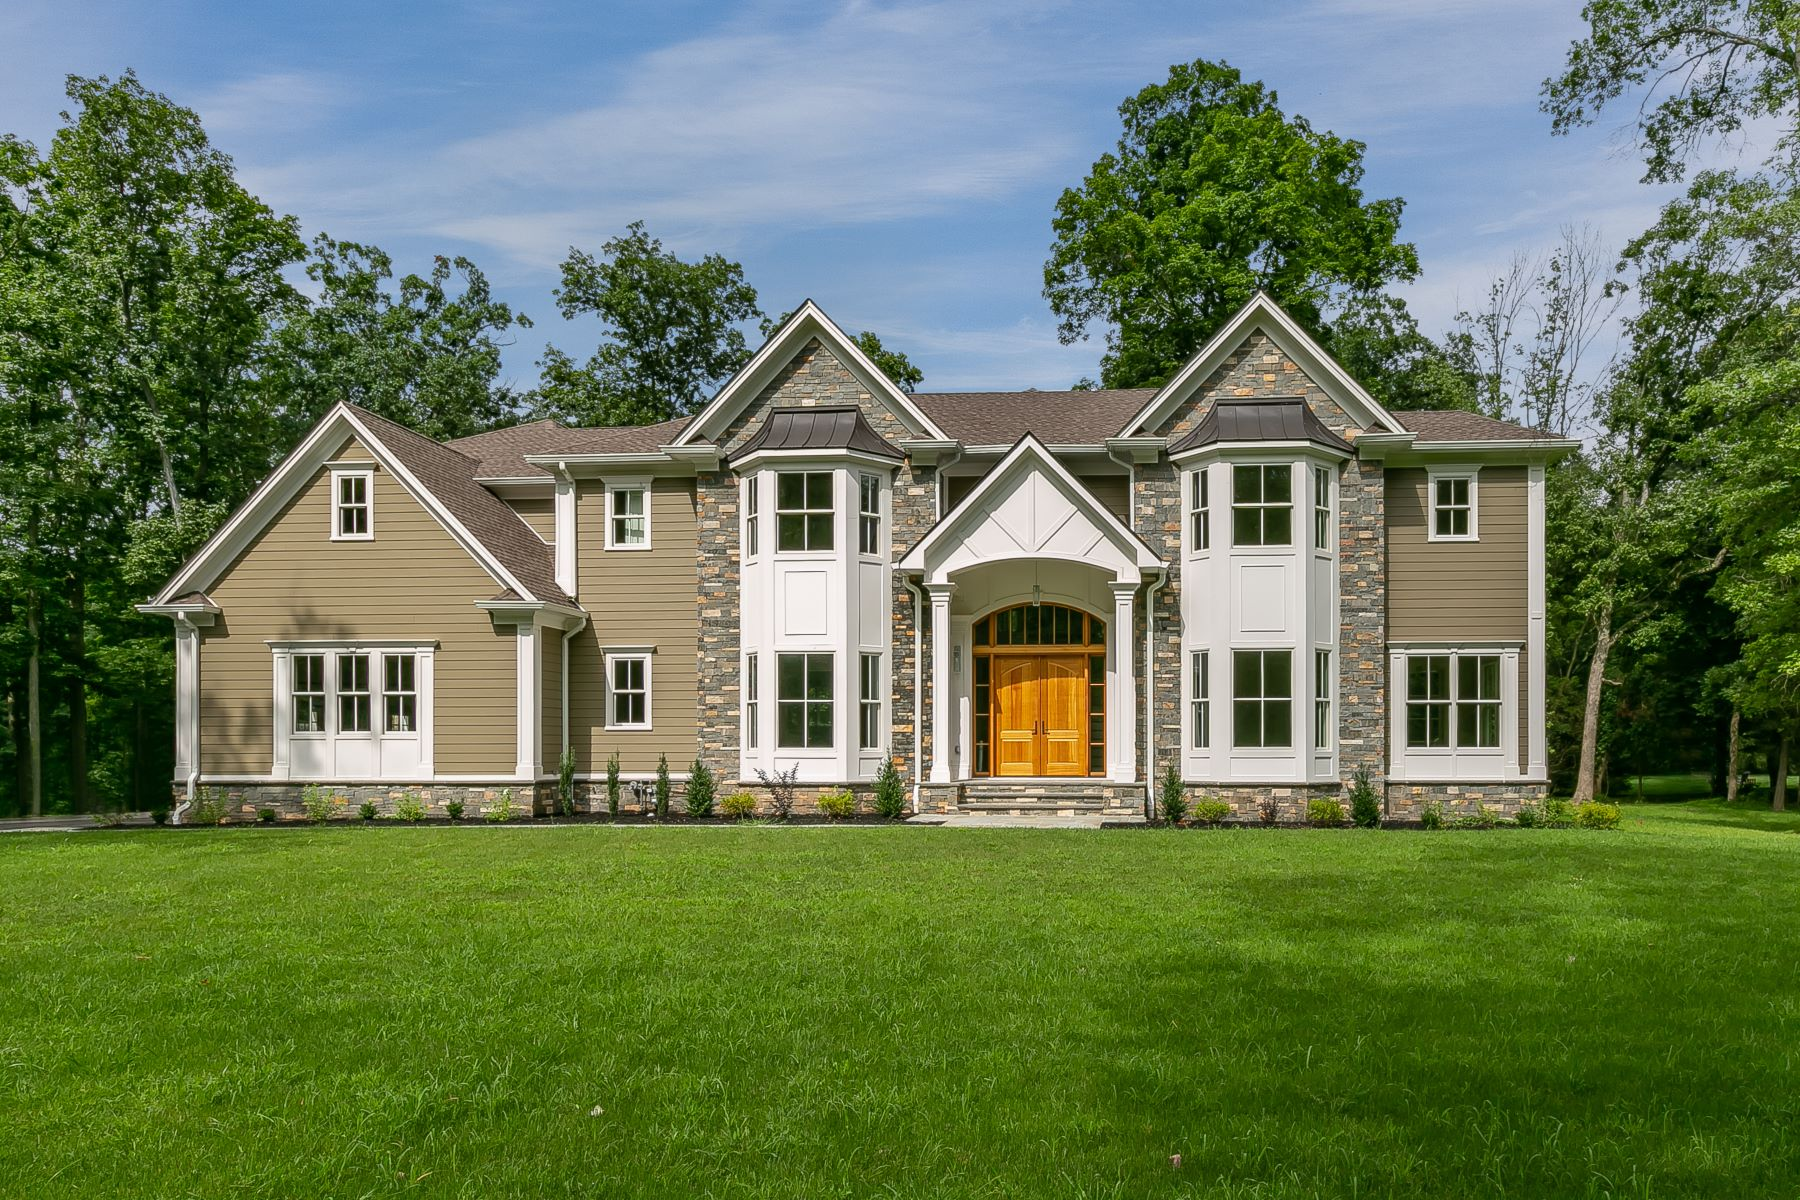 Single Family Homes for Sale at Simply Stunning 60 Annin Road Basking Ridge, New Jersey 07920 United States